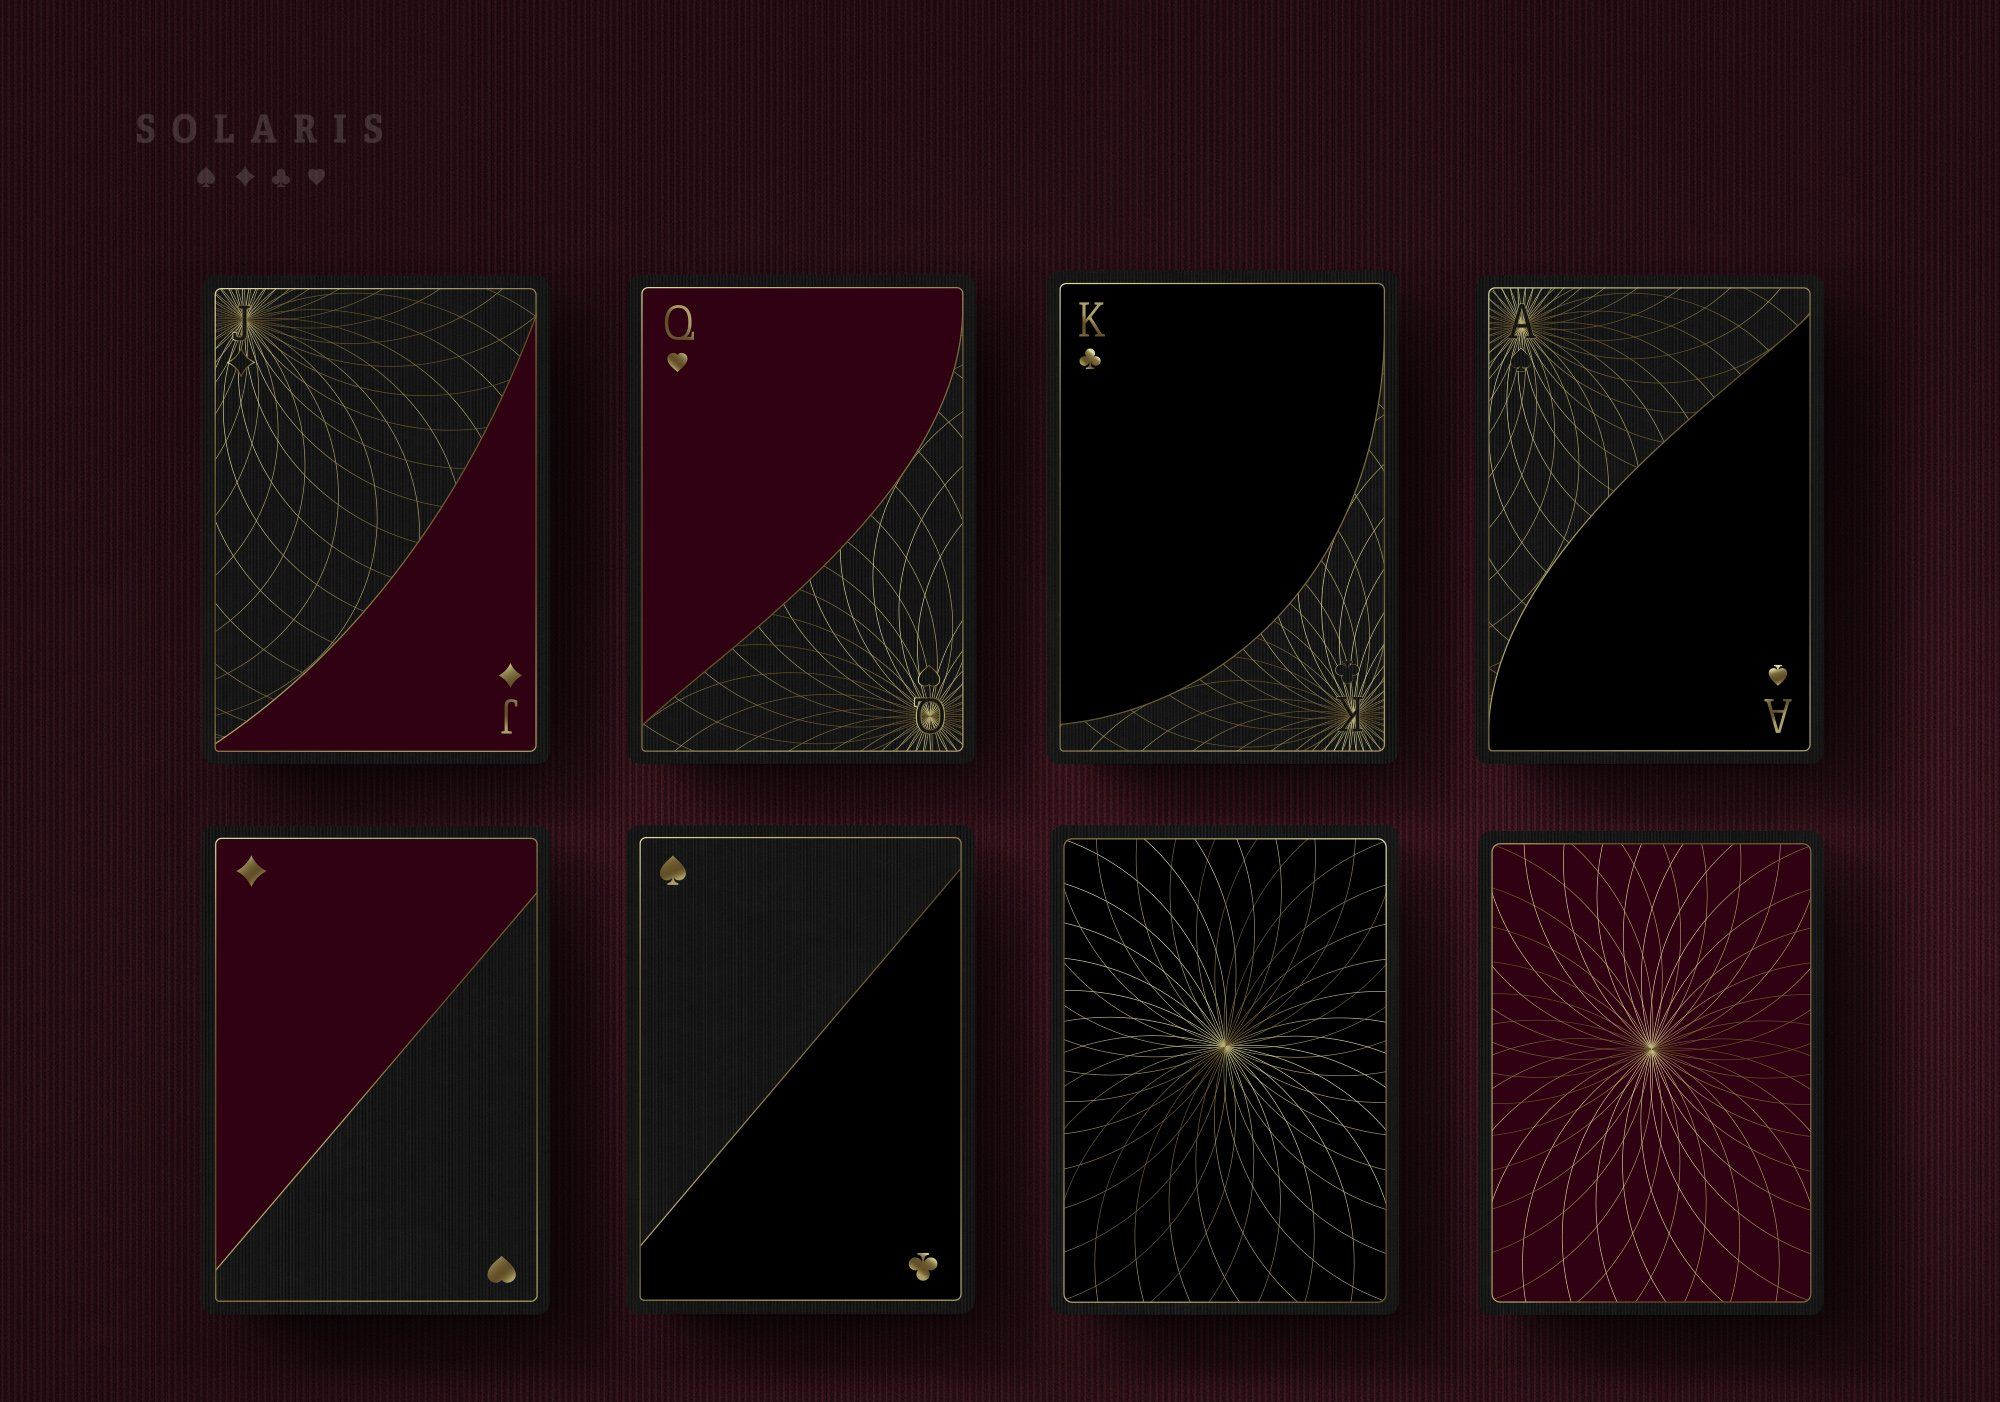 PLAYING CARDS_SOLARIS FINAL6